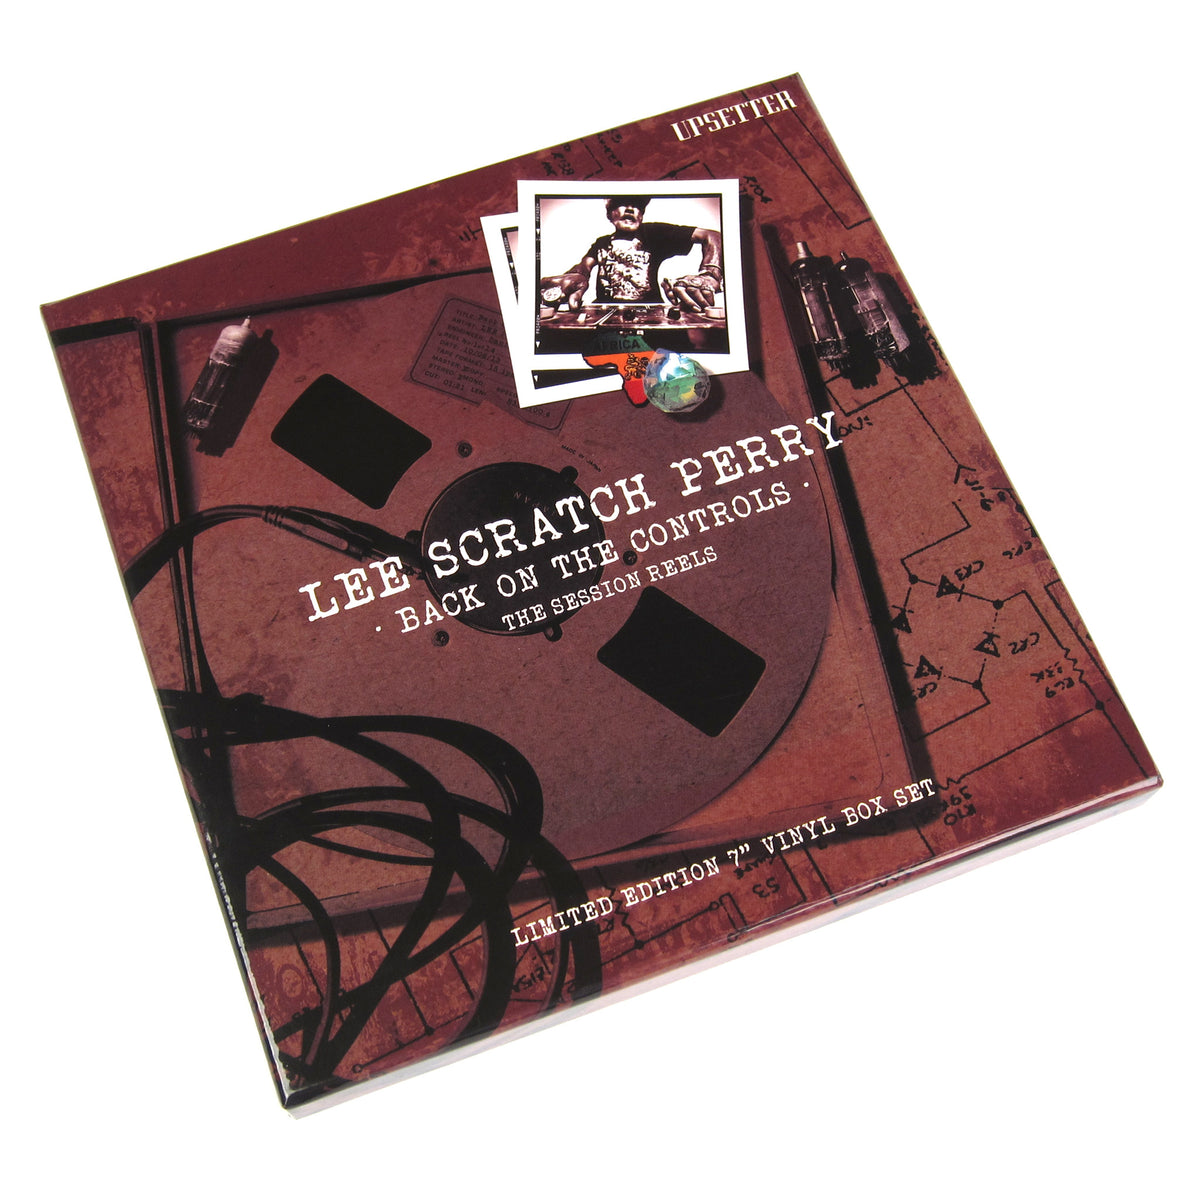 "Lee Scratch Perry: Back On The Controls - The Session Reels 5x7"" Boxset (Record Store Day)"